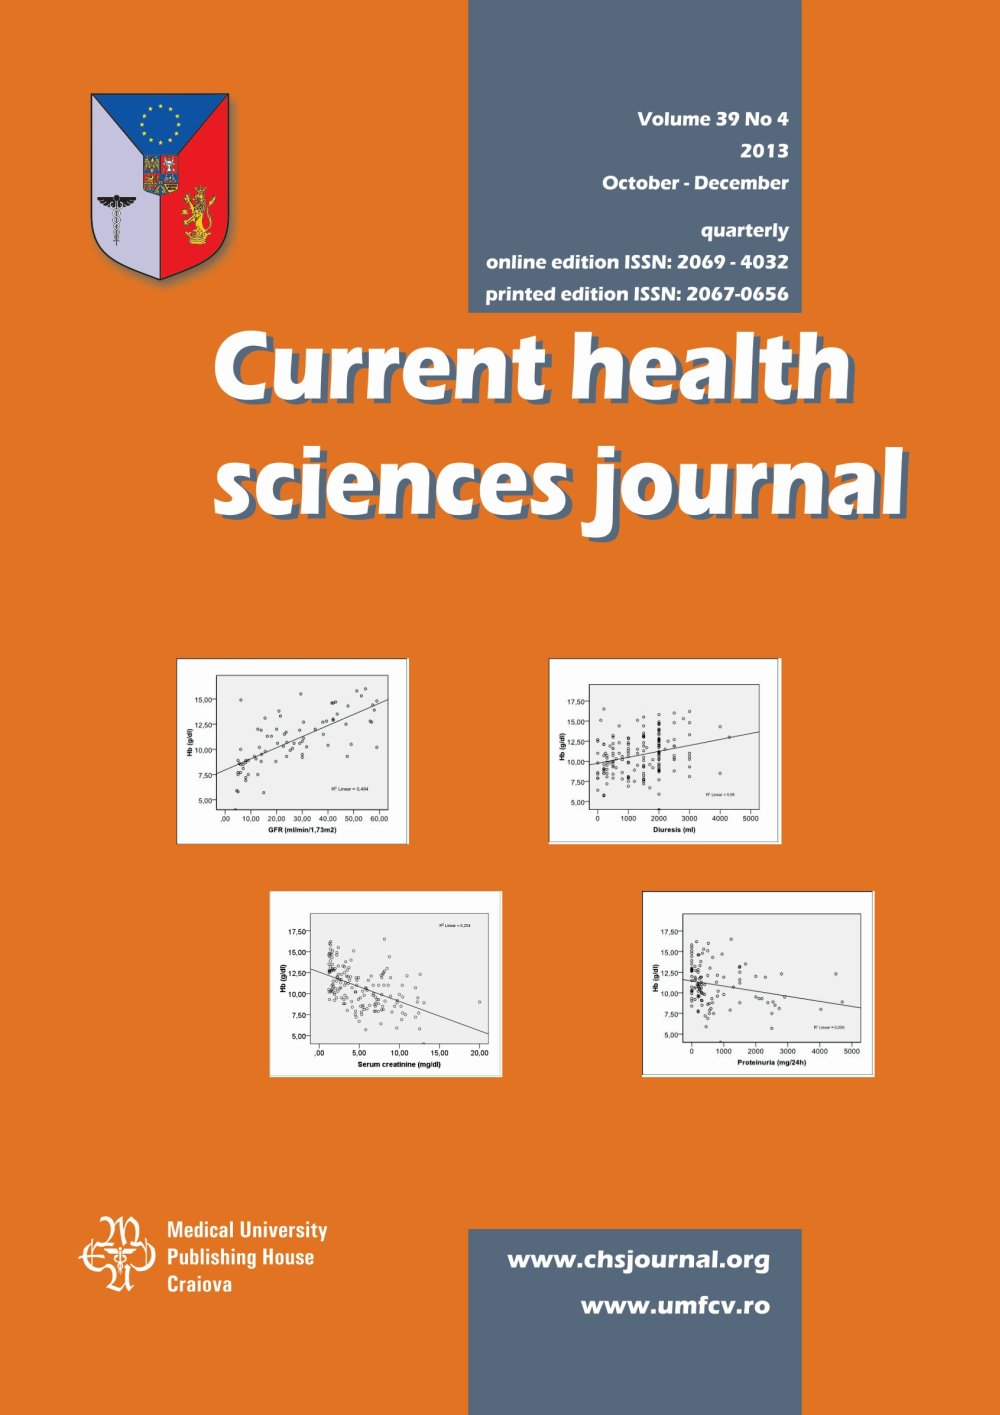 Current Health Sciences Journal, vol. 39 no. 4, 2013